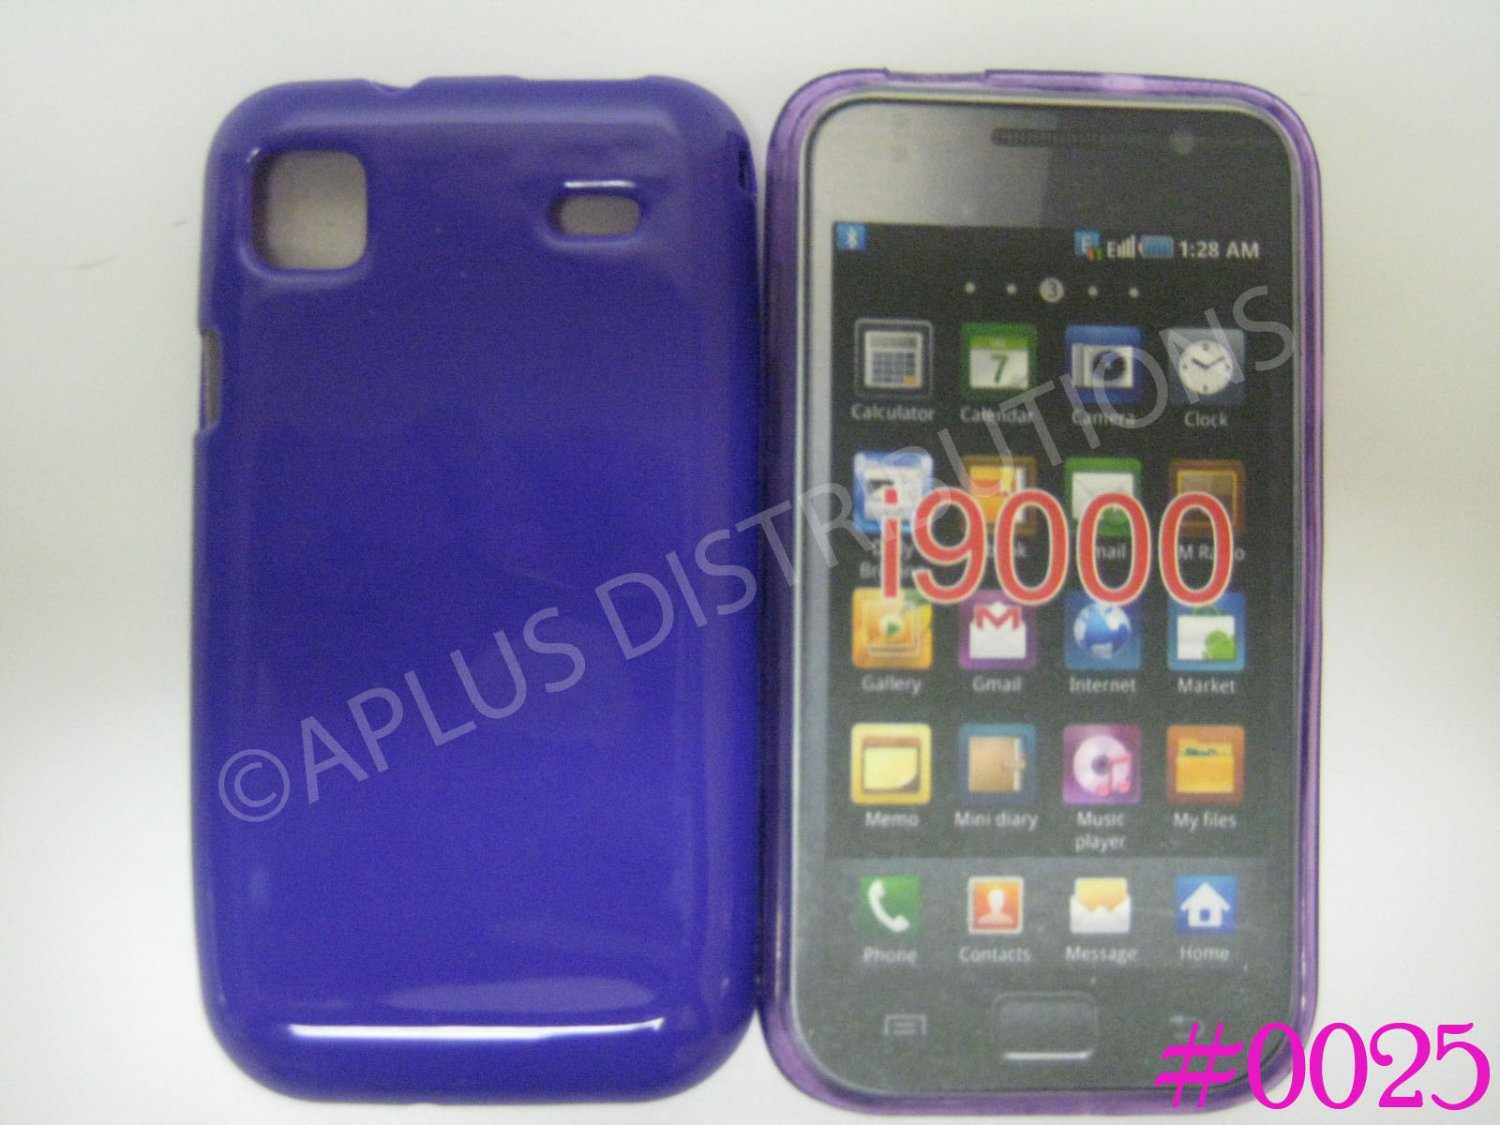 New Purple Solid Color TPU Cover For Samsung Galaxy S I9000 - (0025)